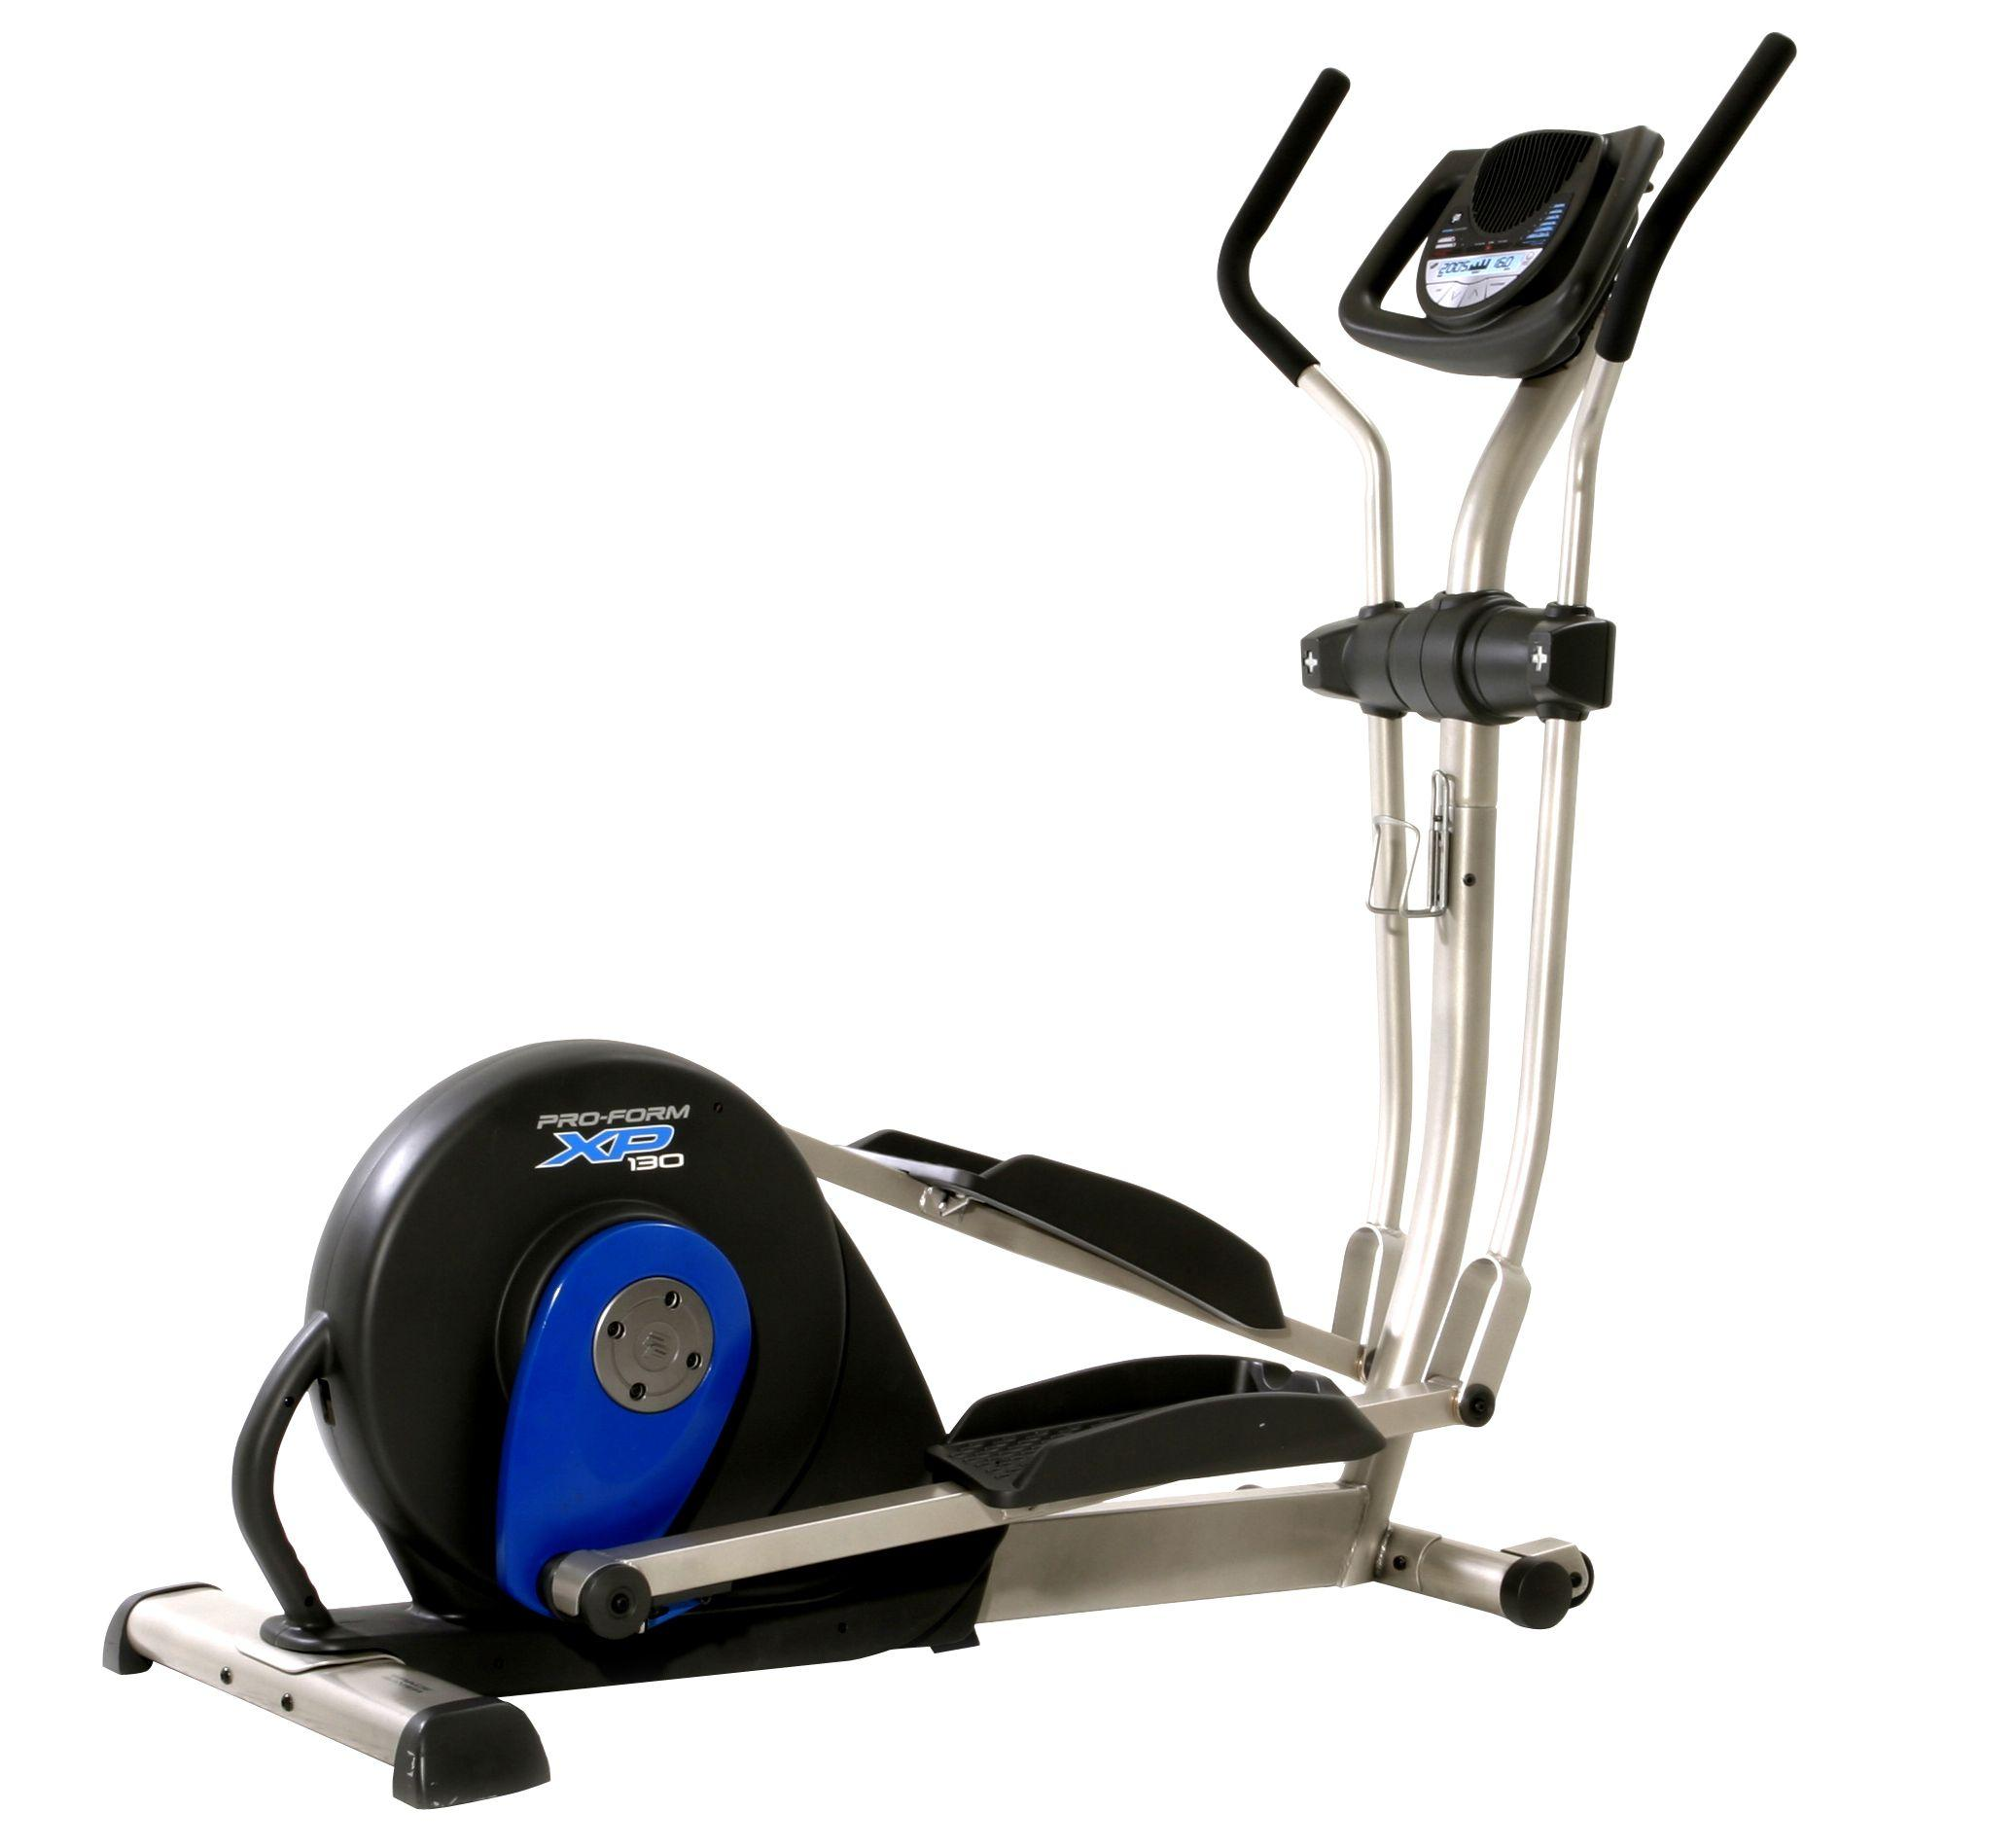 Proform Xp 110 Elliptical